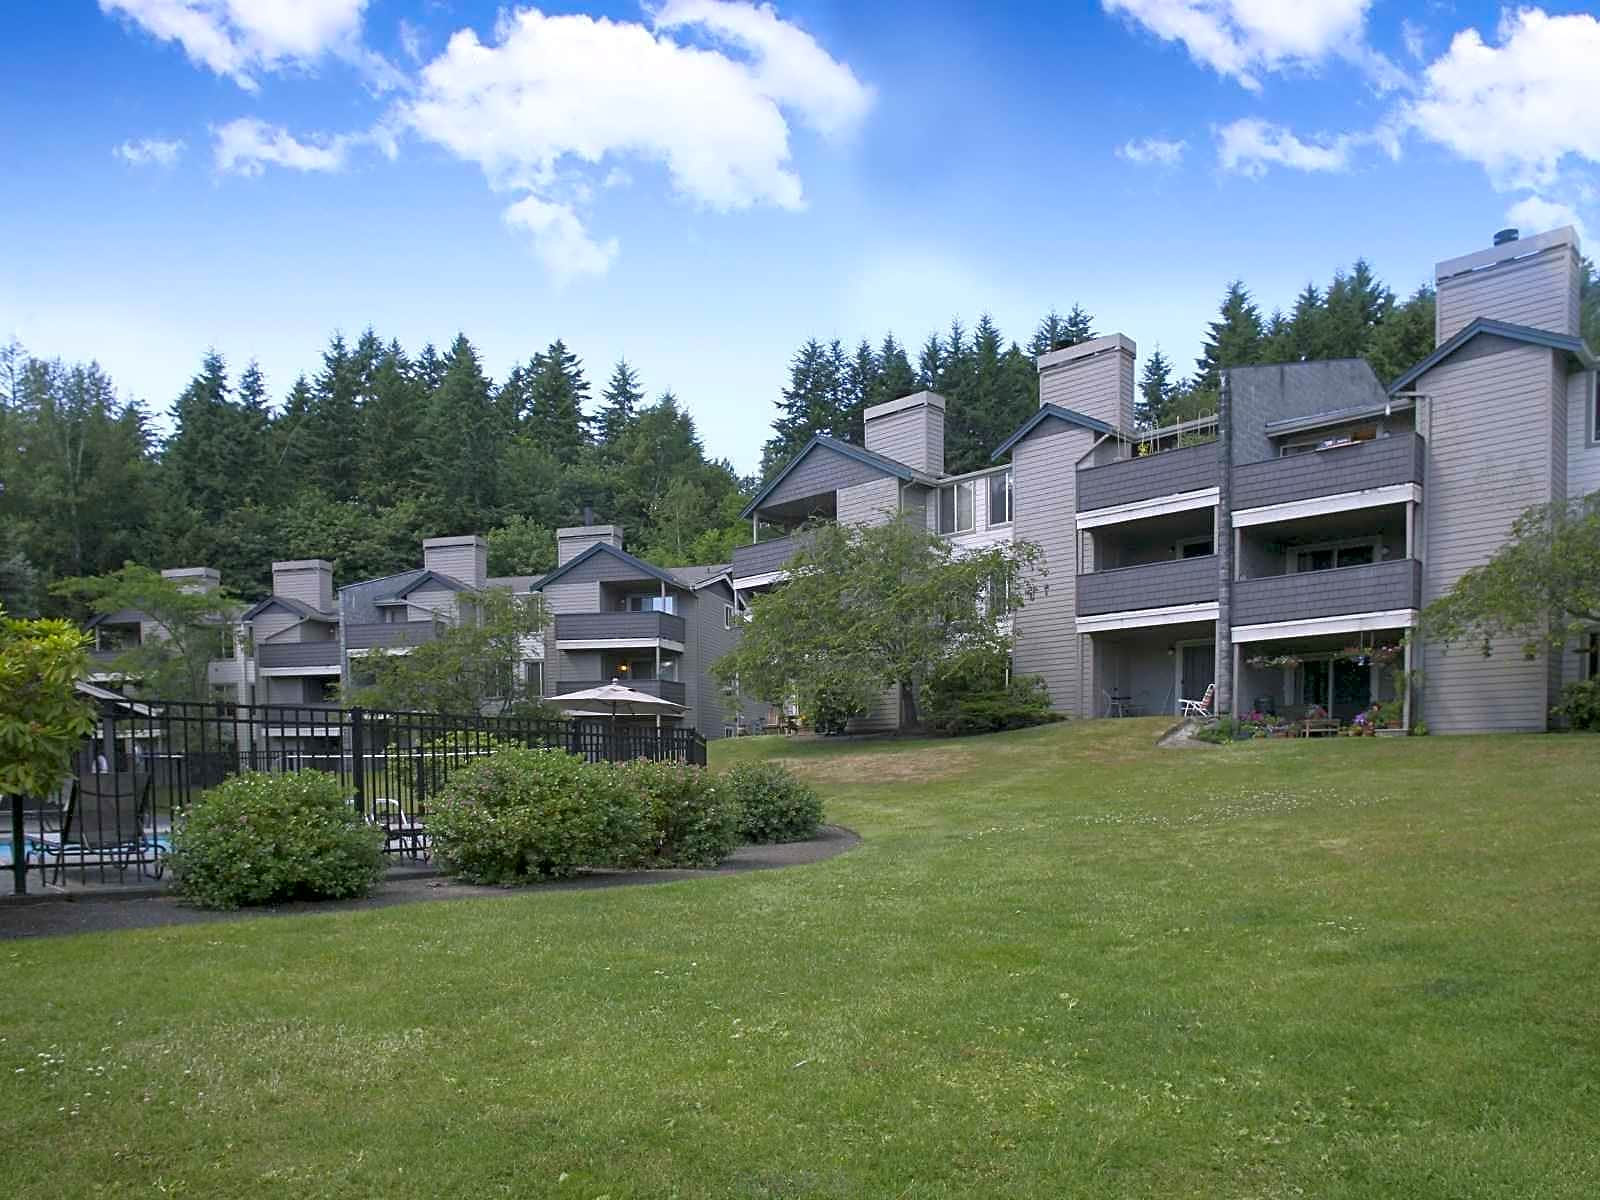 Pet Friendly Apartments In Bothell Wa Pet Friendly